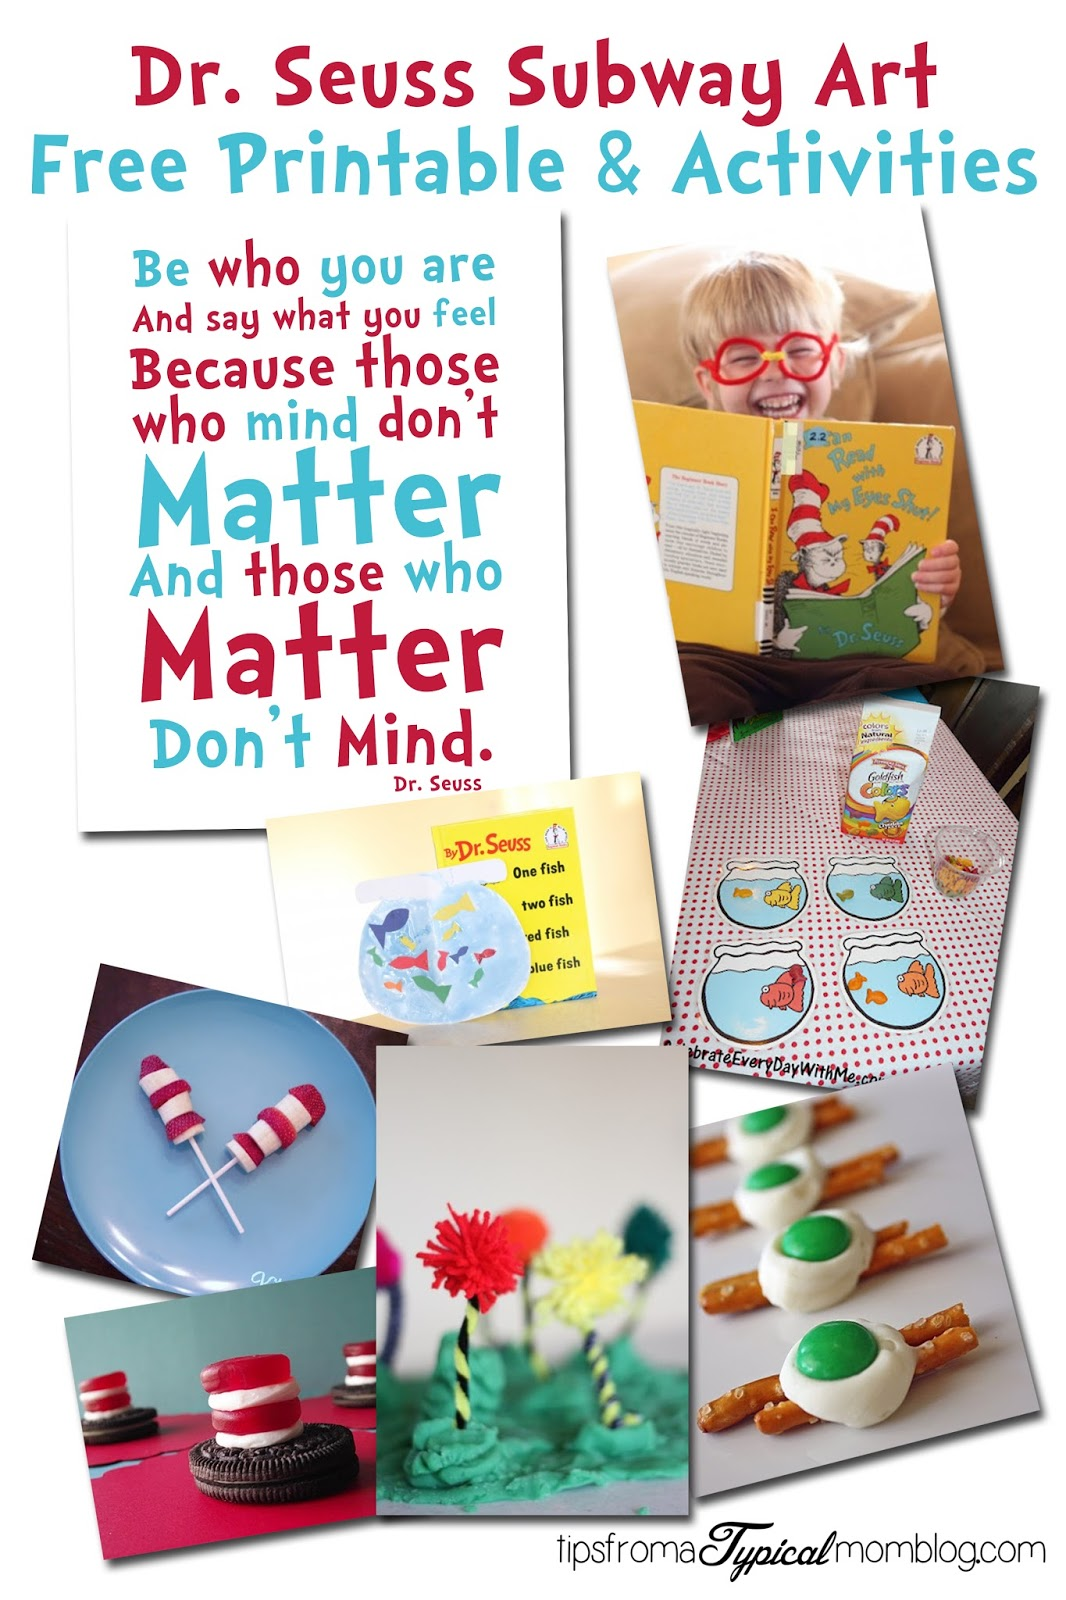 photo relating to Dr.seuss Quotes Printable named Dr. Seuss Quotation Printable and Actions for little ones - Pointers